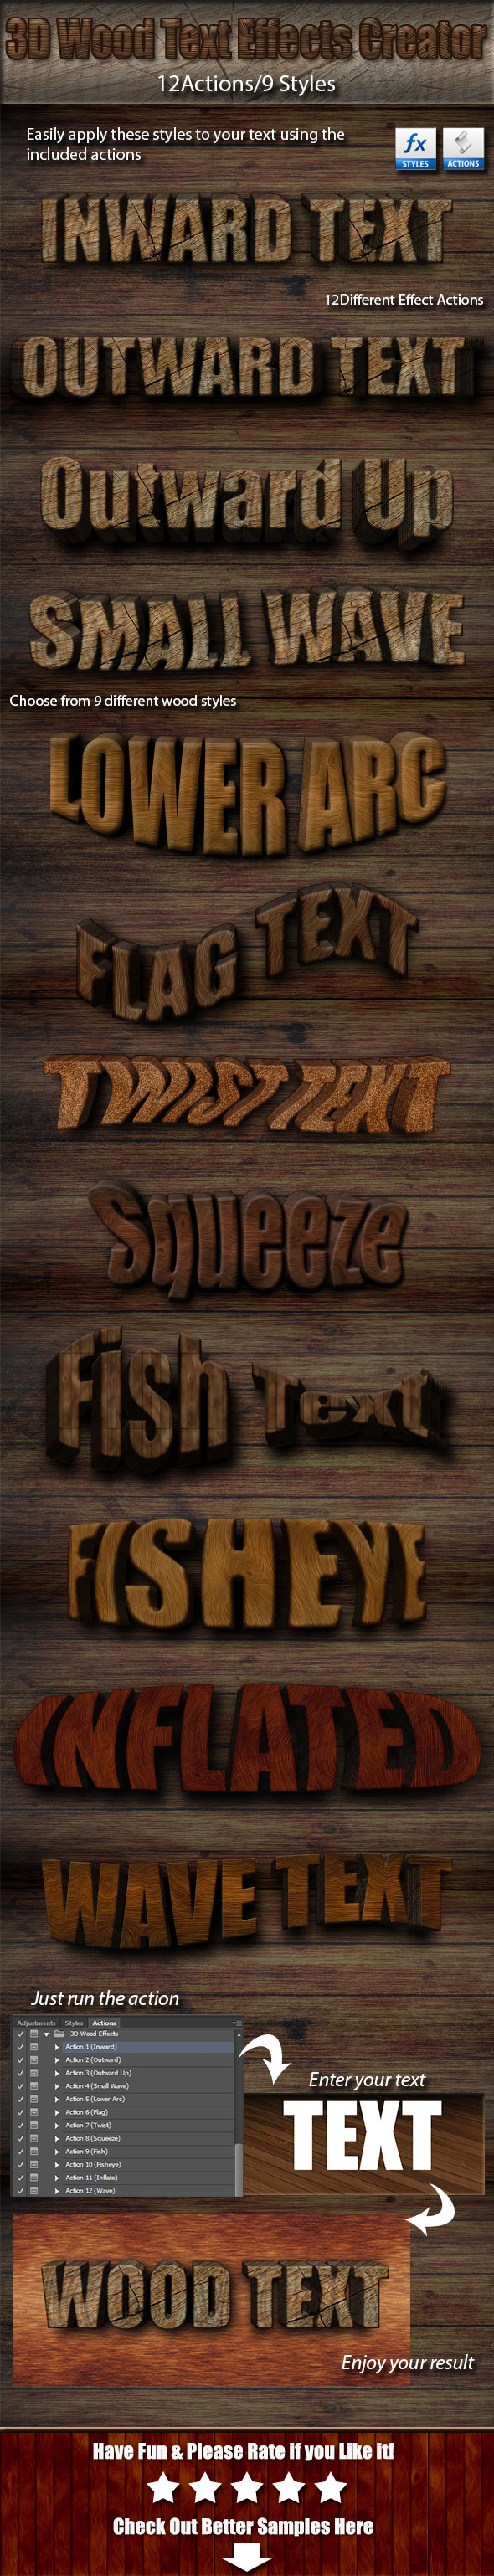 3D Wood Text Effects Creator Kit - Text Effects Actions